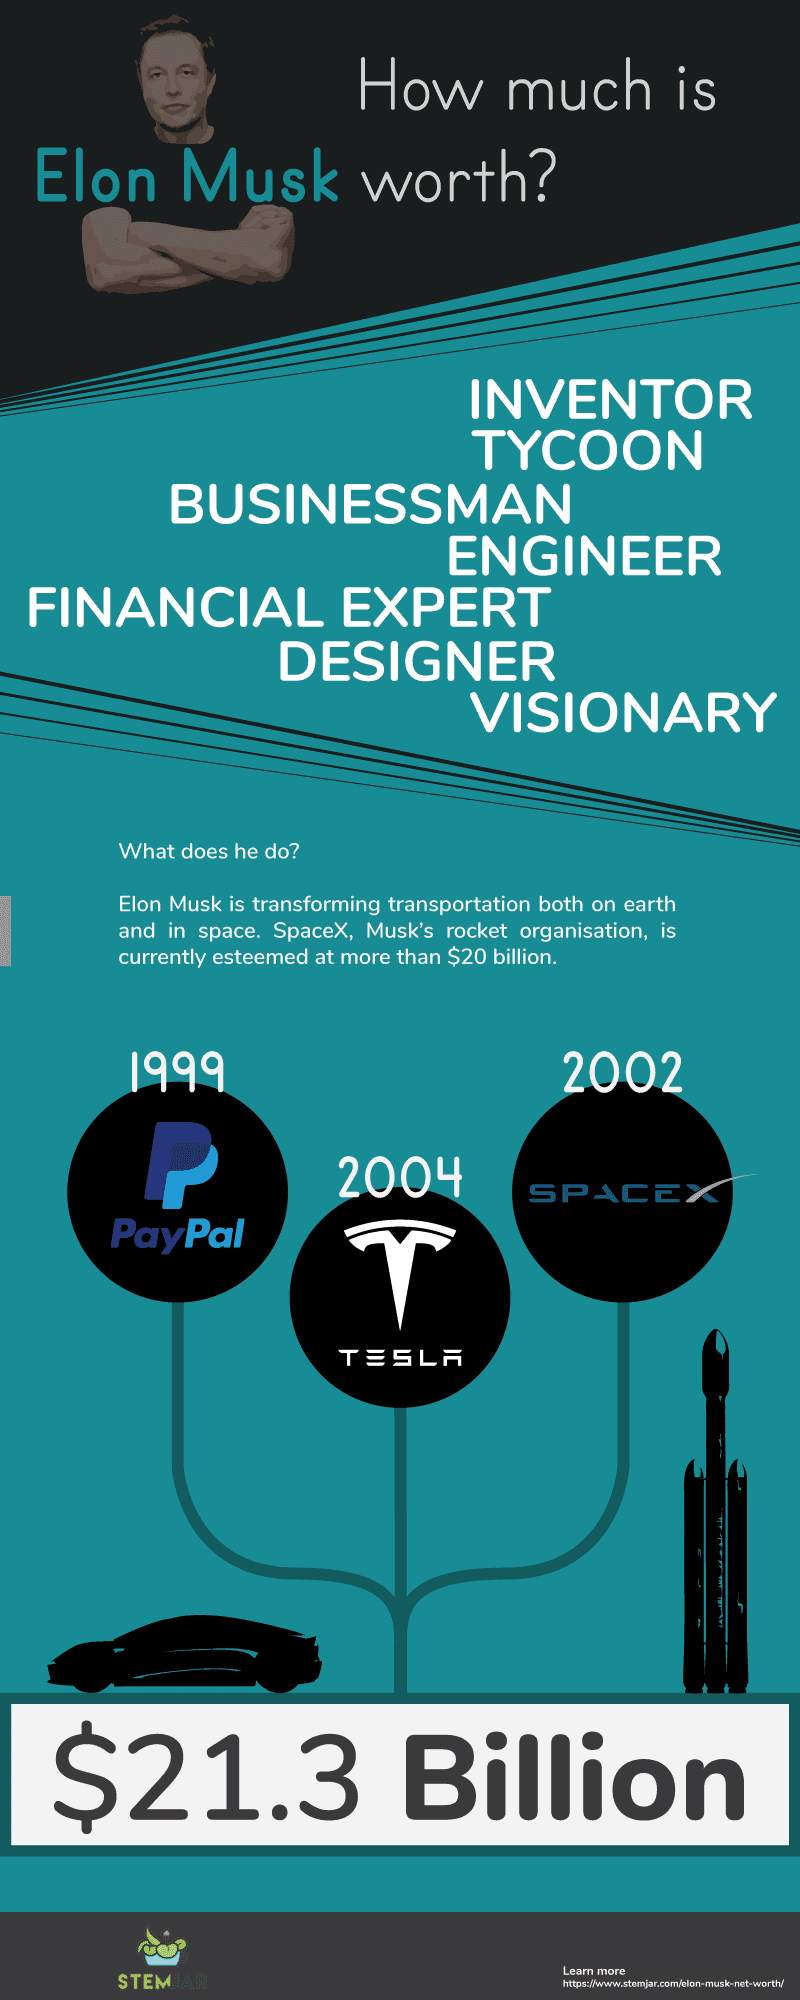 Elon Musk Net Worth info graphic